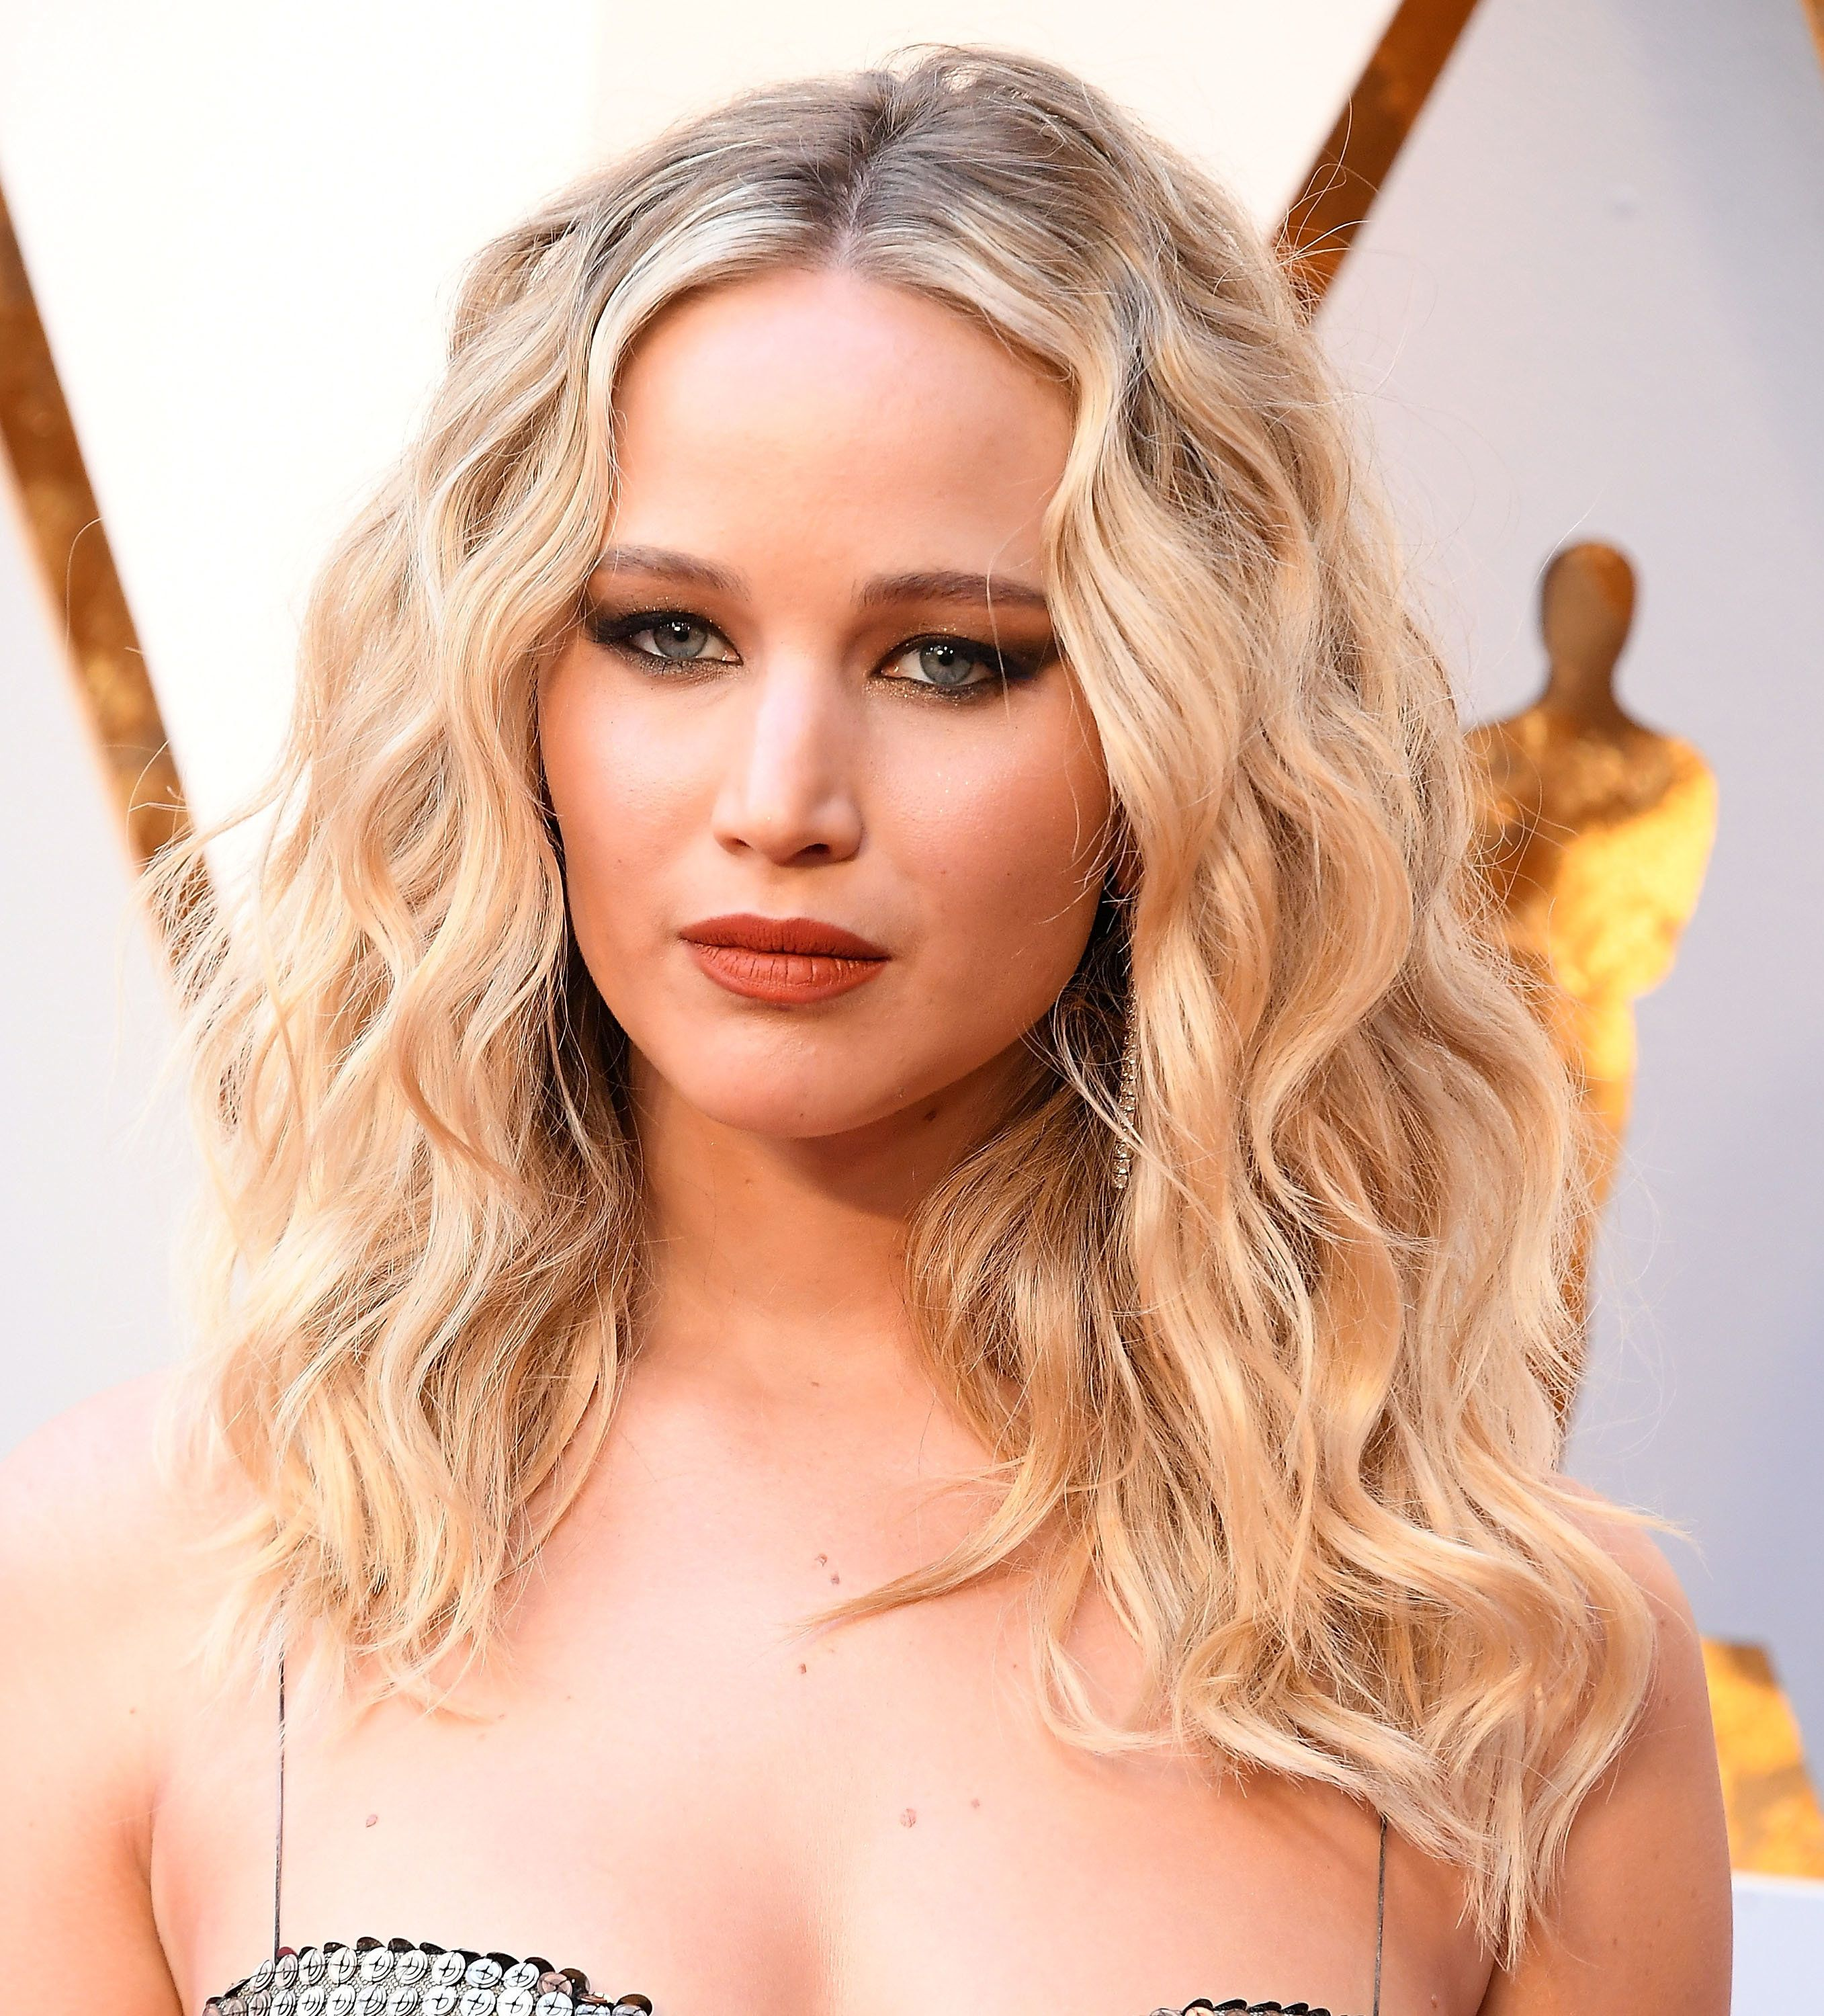 Jennifer Lawrence Nude Photos Hacker Sentenced To 8 Months In